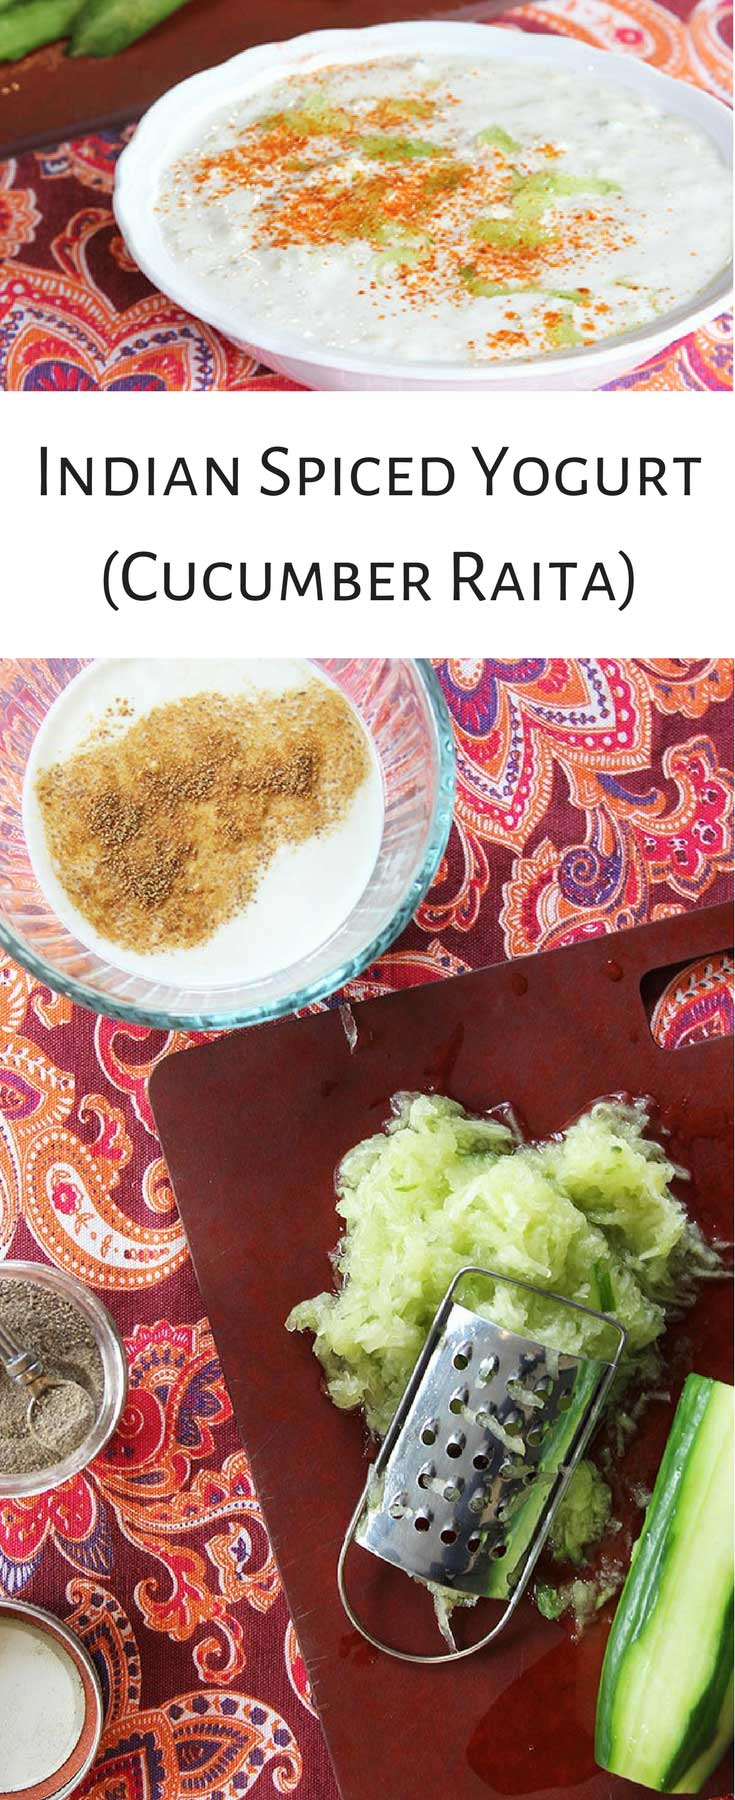 Savory Yogurt For Dinner? Try Cucumber Raita